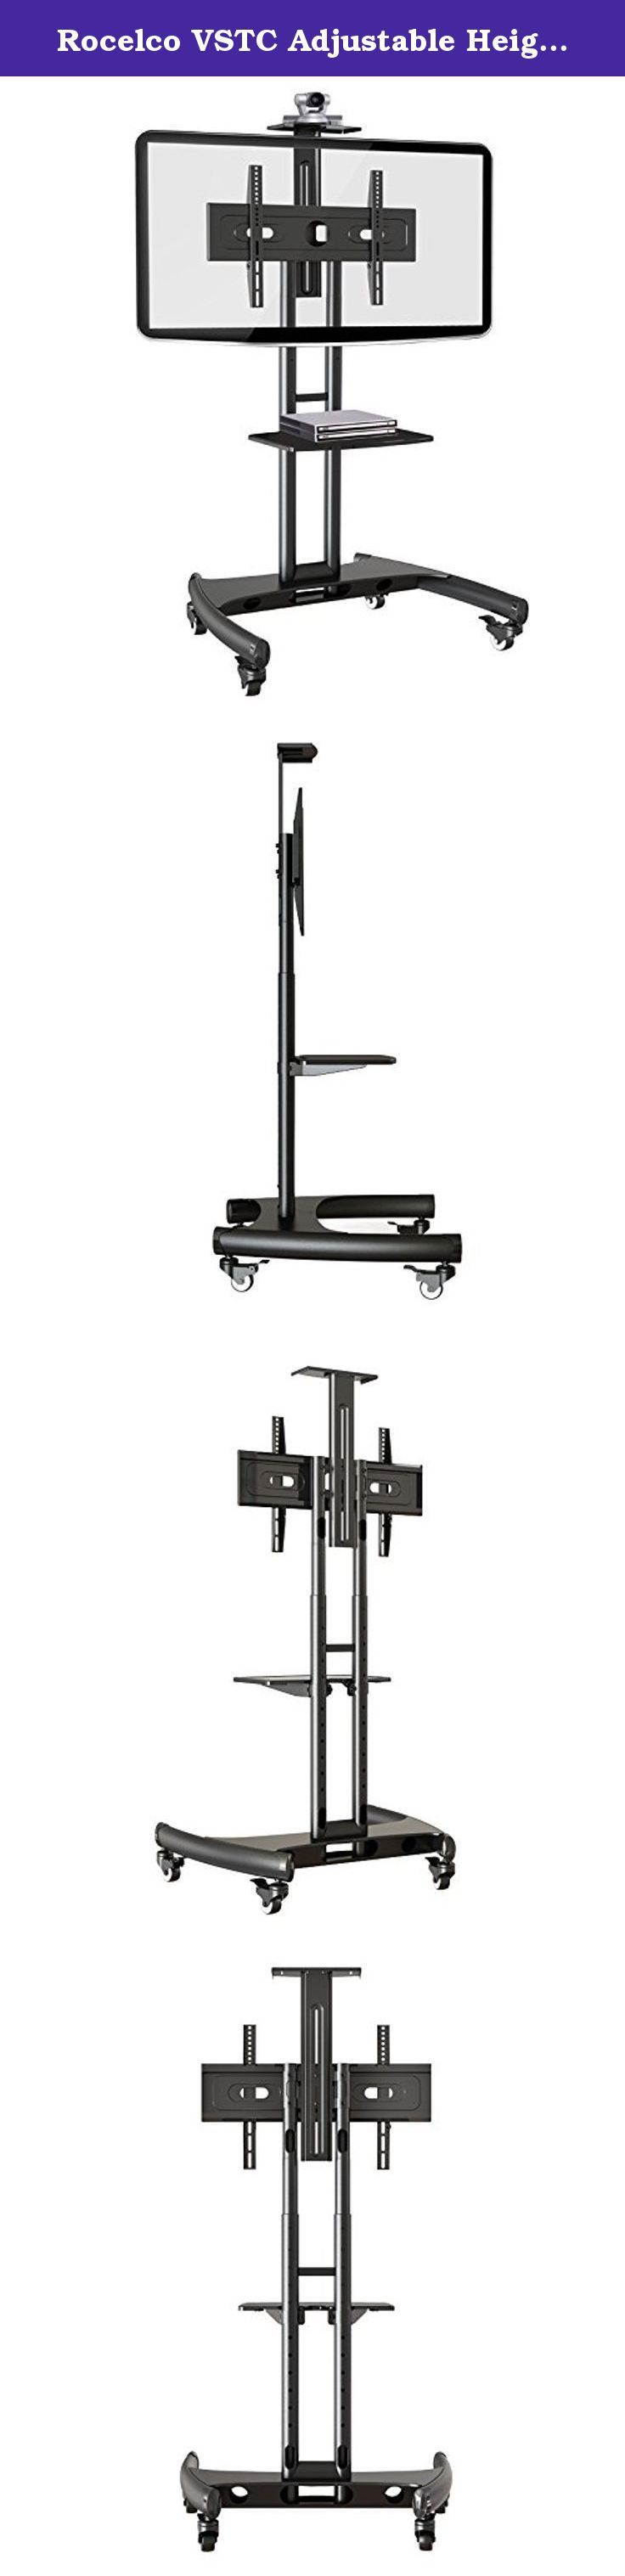 """Rocelco VSTC Adjustable Height Mobile TV Stand, for 32-70 inch Flat Screen TVs, with with AV and Webcam Shelf - Black. The VSTC is the perfect rolling TV Cart in offices, conference rooms, classrooms, kiosks, retail stores, hotels, training centers, etc. The STC comes standard with the accessories that other companies charge extra. Our heavy duty steel frame can easily support large screens up to 70"""" and 100 lbs. The flexible TV mounting interface can accommodate screens from 32"""" – 70""""…"""